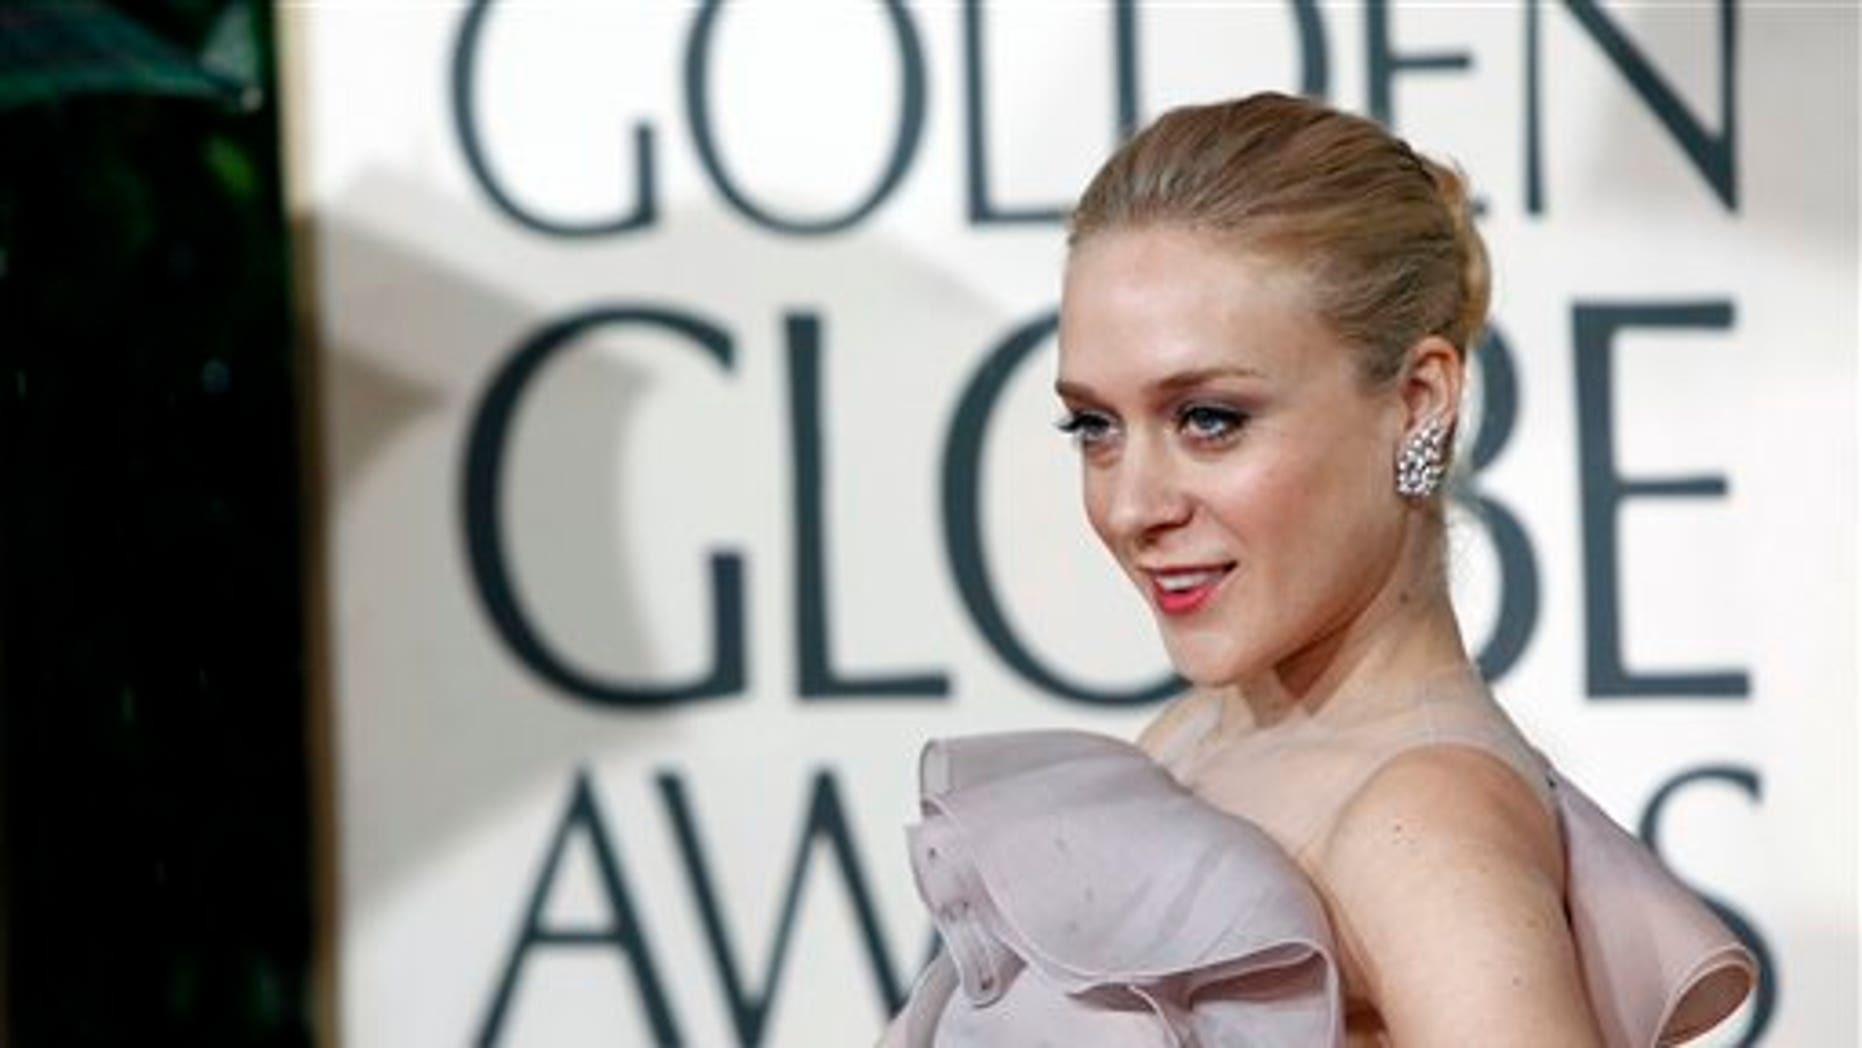 Chloe Sevigny arrives at the 67th Annual Golden Globe Awards on Saturday, Jan. 17, 2010, in Beverly Hills, Calif. (AP Photo/Matt Sayles)